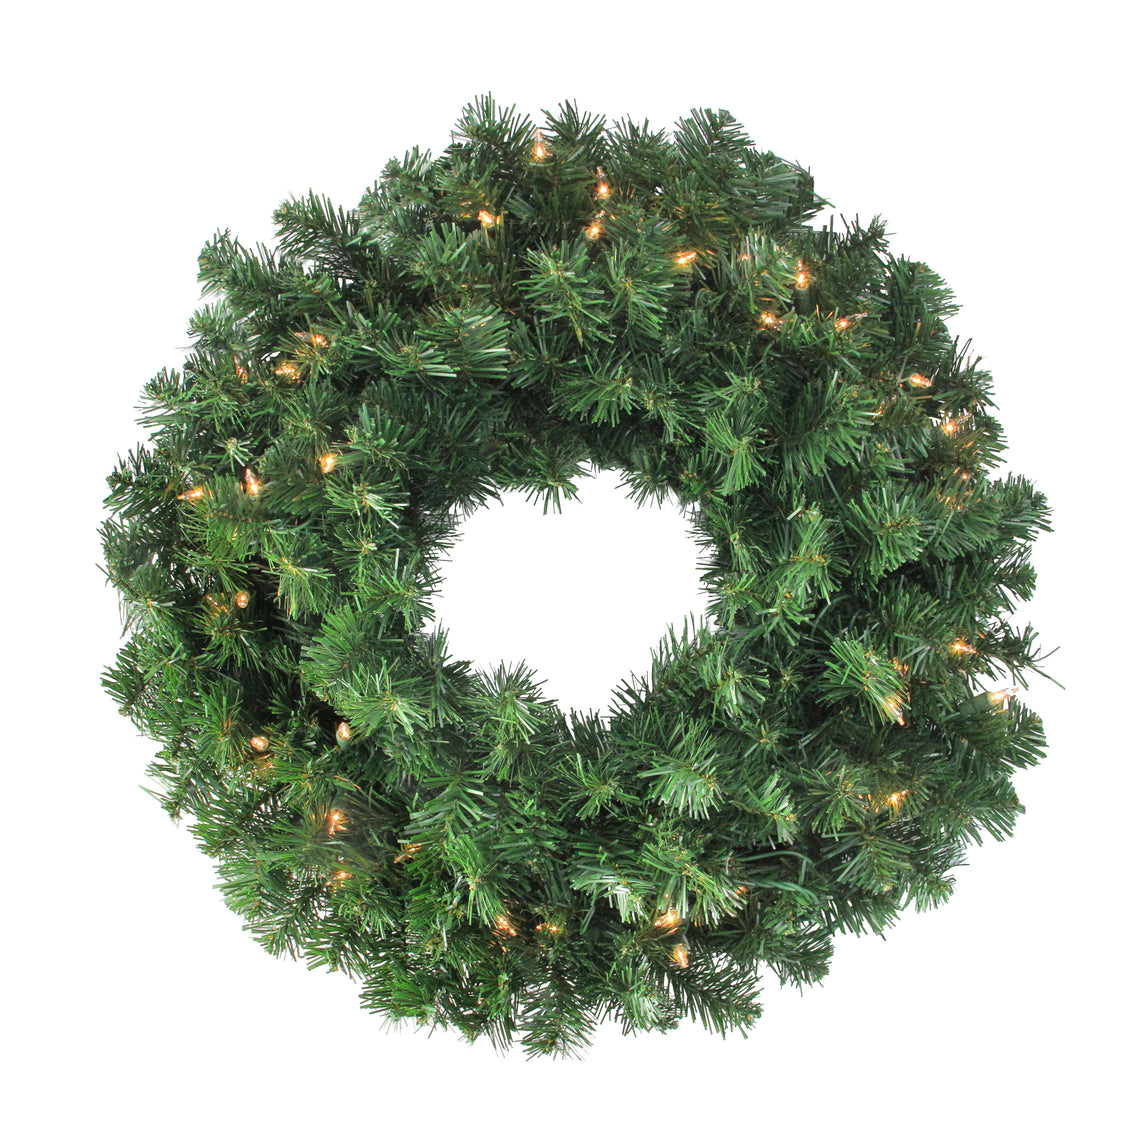 Mixed Canyon Pine Artificial Christmas Wreath - 24-Inch  Clear Lights,